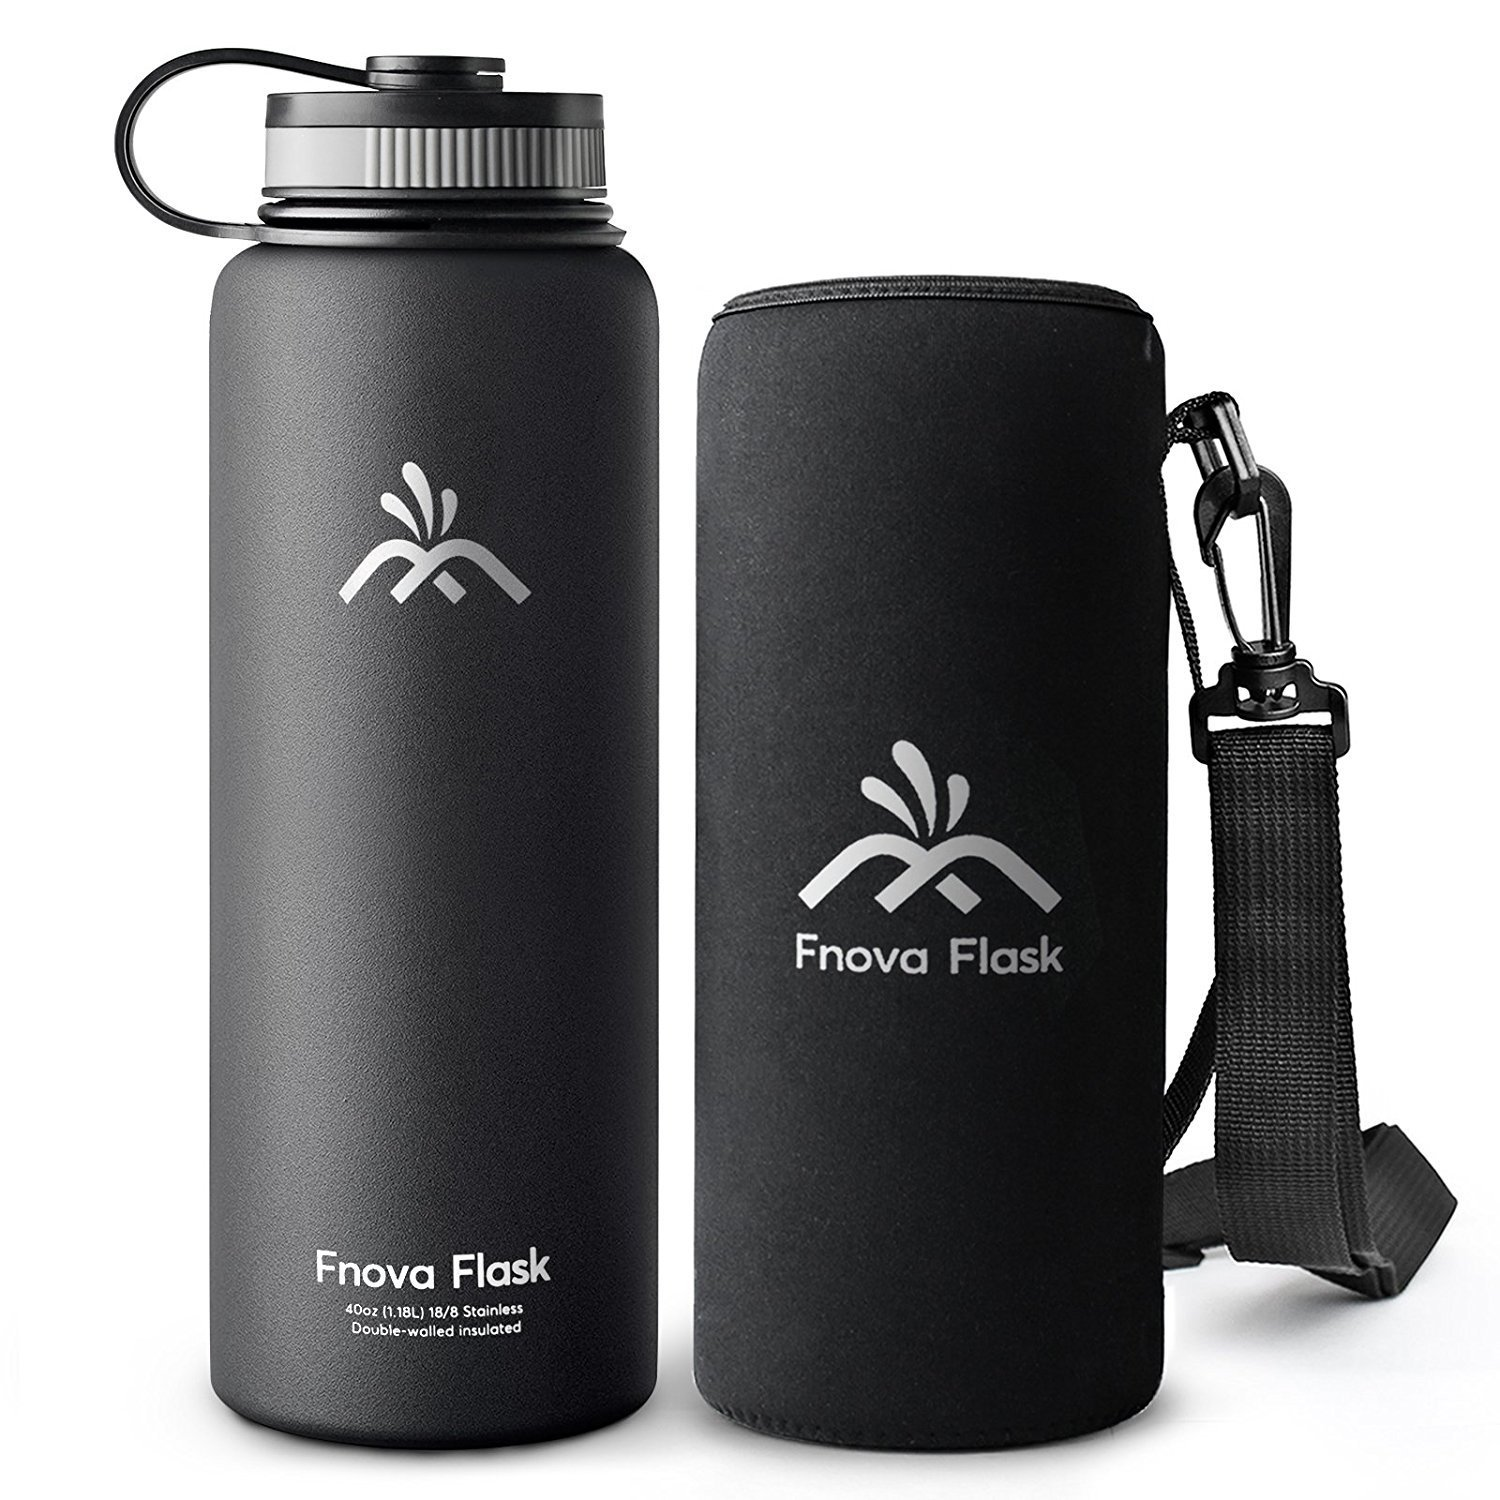 40 oz Stainless Steel Water Bottle, Fnova Flask Insulated Double Walled Vacuum Thermos, Wide Mouth bouns Protective Pouch/Carry Cover, BPA-Free, Cold 24 Hrs / Hot 12 Hrs